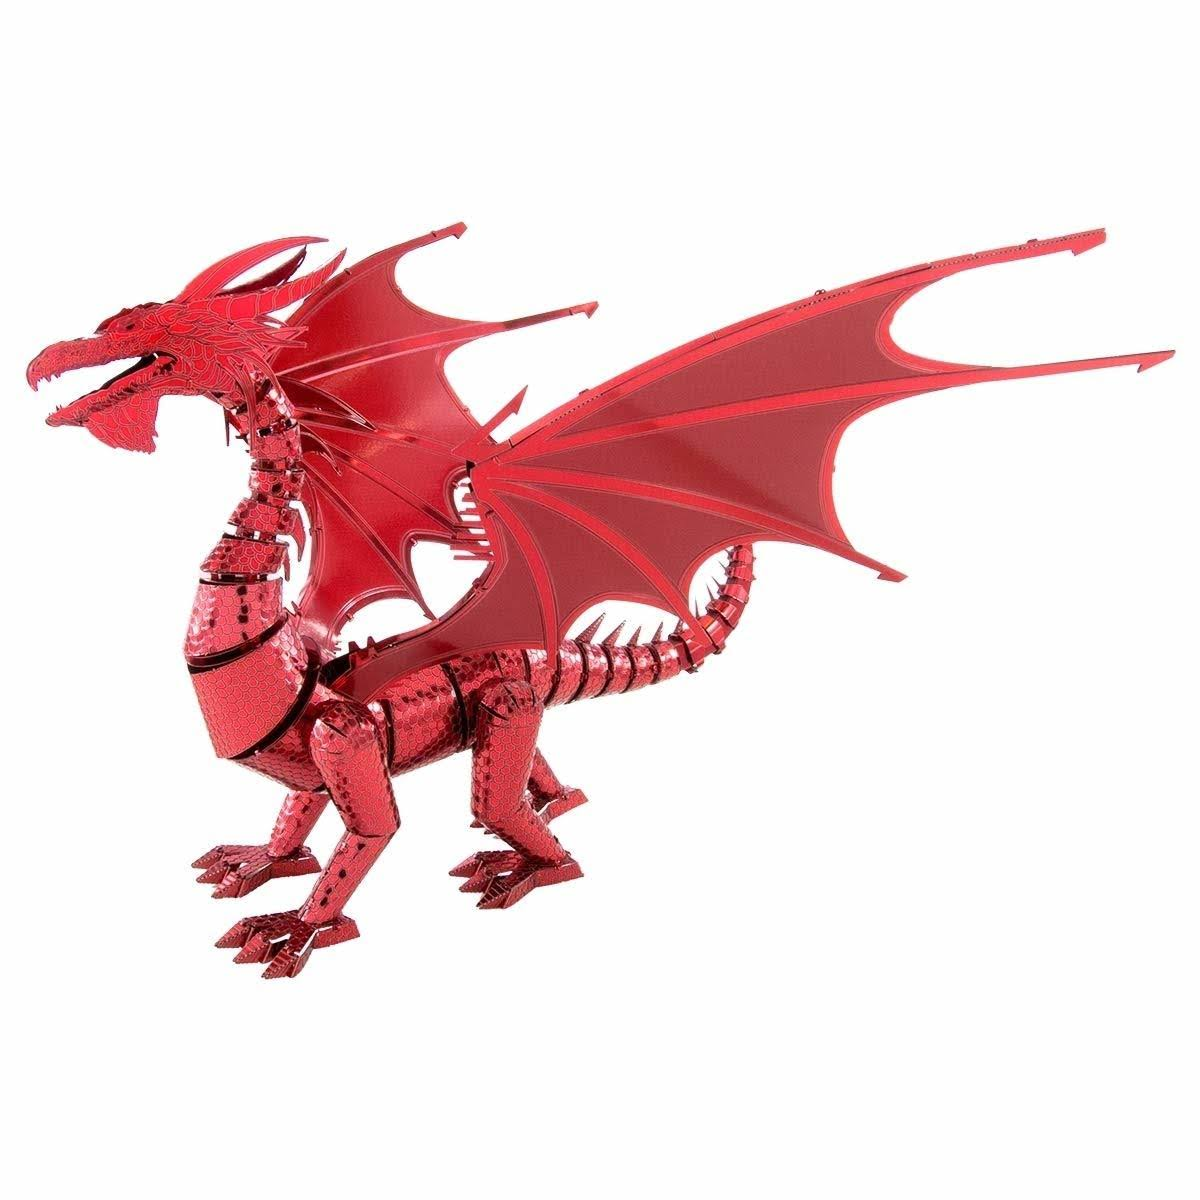 Metal Earth ICONX Red Dragon 3D Model Kit